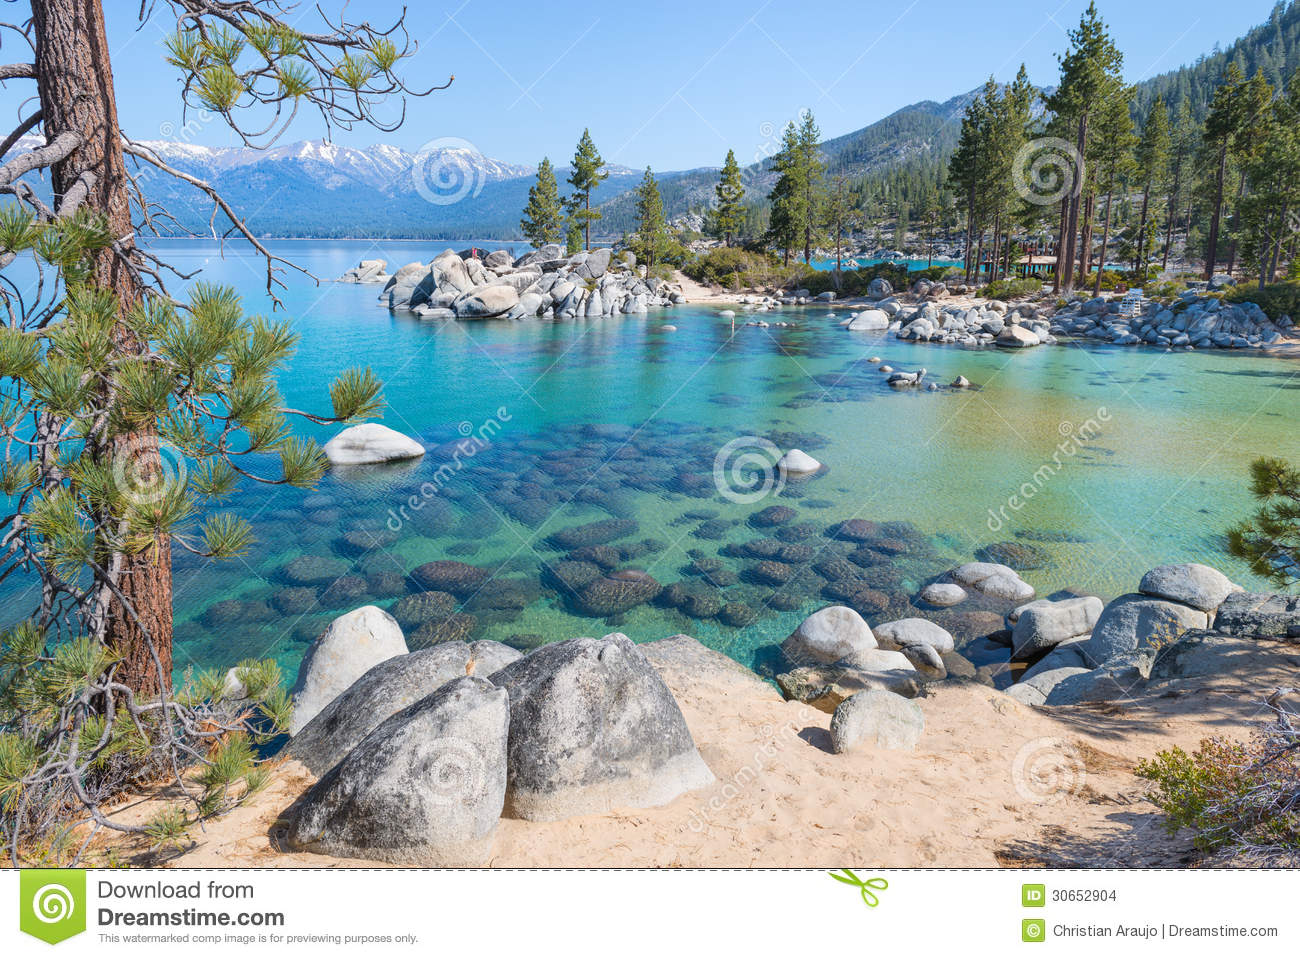 tahoe vista christian personals Christian schrader patricia landis wayne engekstad alexandra clark  as intended long-term residents of tahoe vista, we are also concerned that we are clo.